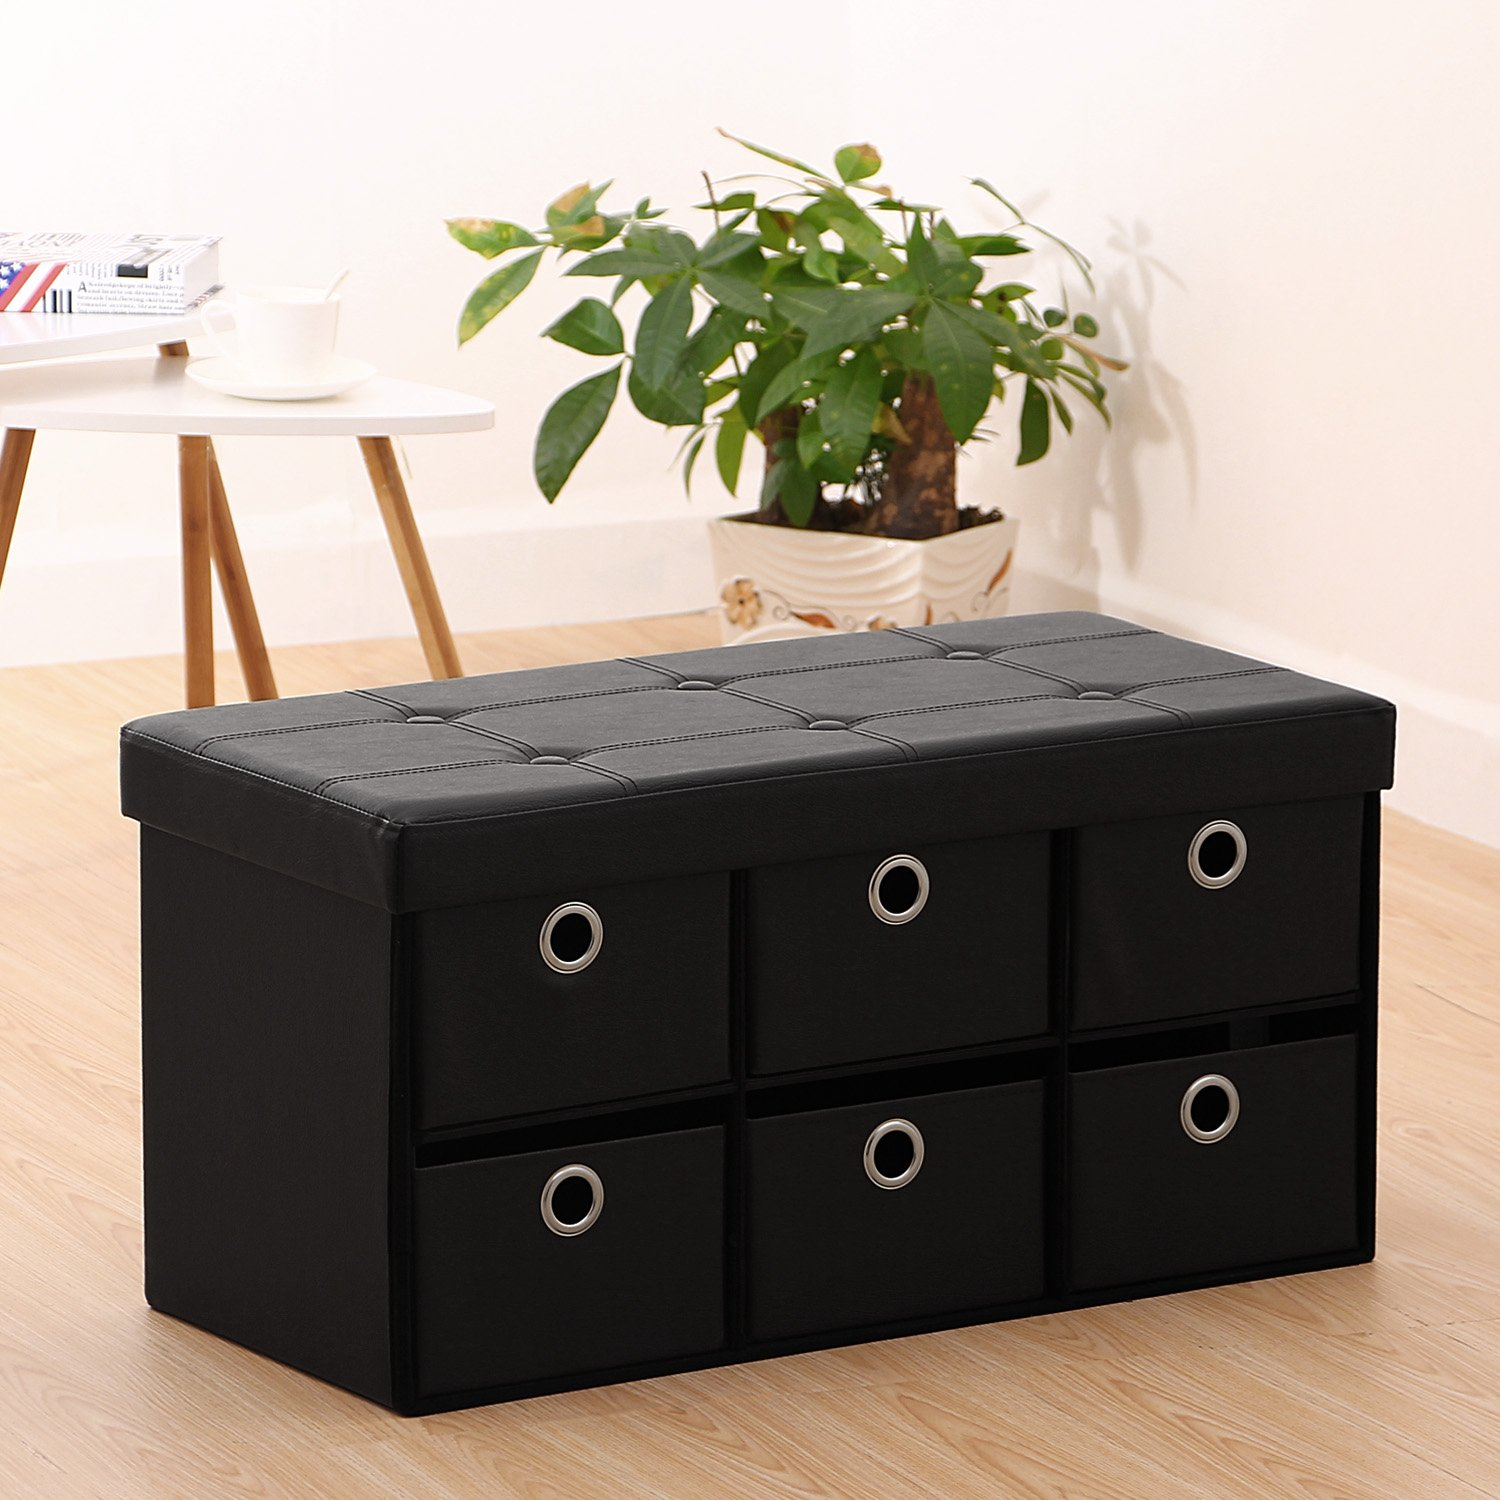 Brilliant Ollieroo Pu Leather Foldable Ottoman Storage Bench Foot Rest Space Saver With 6 Drawers Black Machost Co Dining Chair Design Ideas Machostcouk